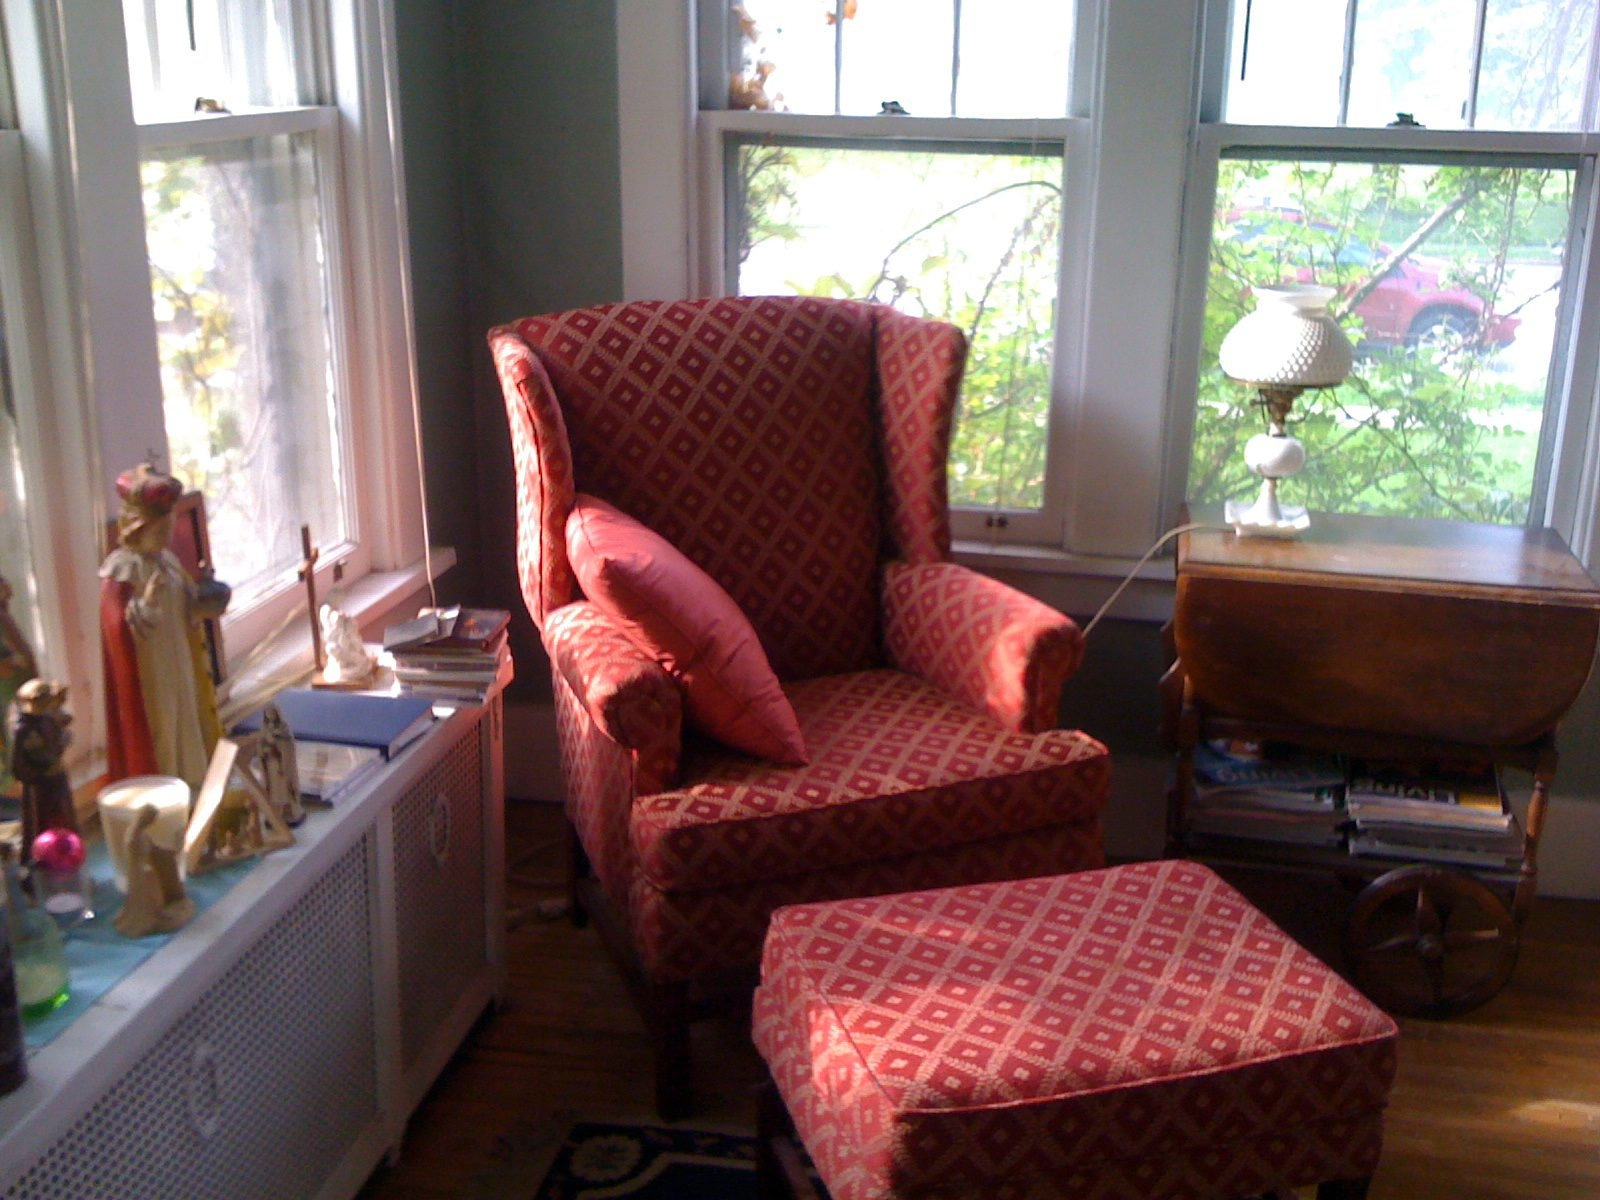 Become the new owner of an old chair and it can trigger a day of redecorating a room.